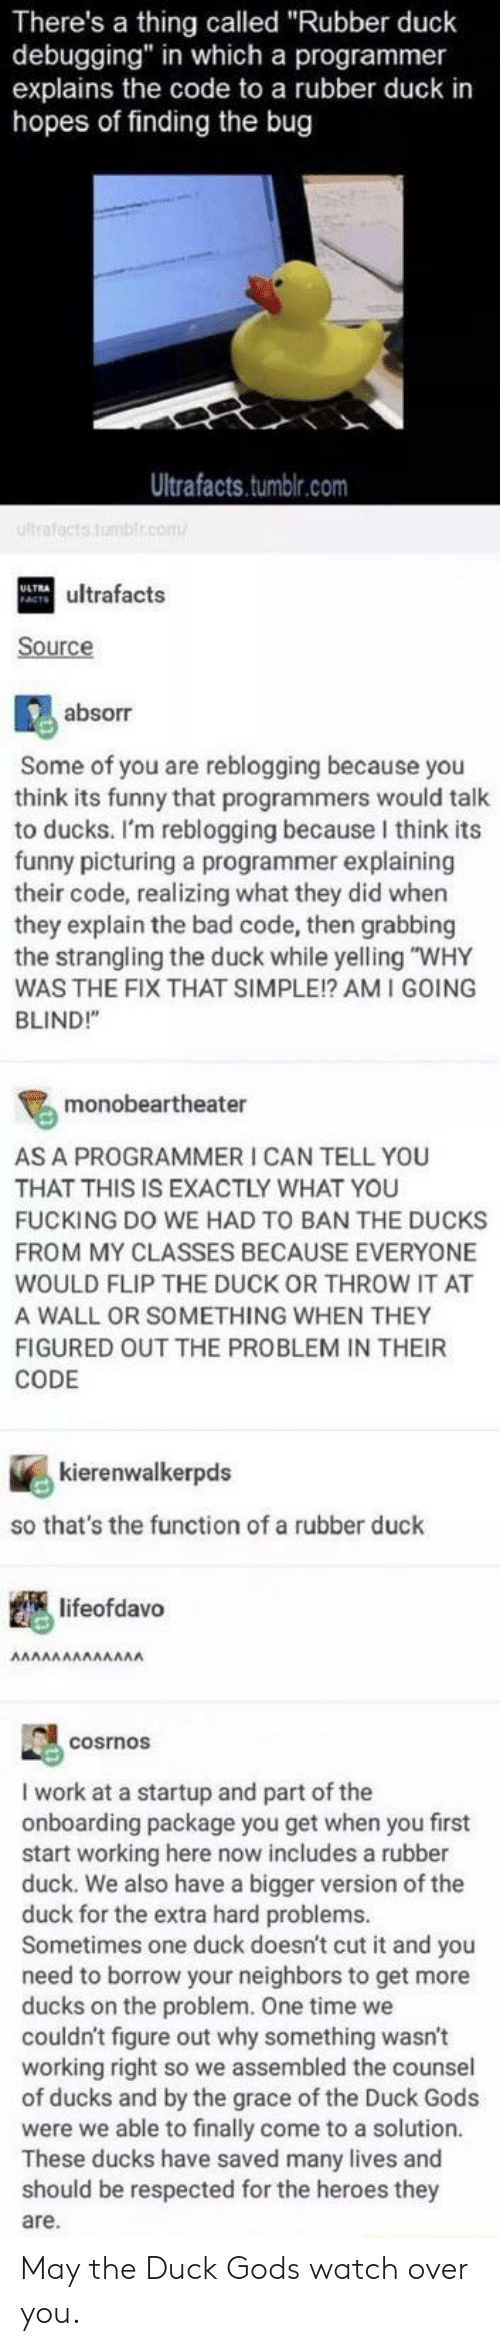 """The Duck: There's a thing called """"Rubber duck  debugging"""" in which a programmer  explains the code to a rubber duck in  hopes of finding the bug  Ultrafacts.tumblr.com  ultrafacts tmblr.com  ATultrafacts  Source  absorr  Some of you are reblogging because you  think its funny that programmers would talk  to ducks. I'm reblogging because I think its  funny picturing a programmer explaining  their code, realizing what they did when  they explain the bad code, then grabbing  the strangling the duck while yelling """"WHY  WAS THE FIX THAT SIMPLE!? AM I GOING  BLIND!""""  monobeartheater  AS A PROGRAMMER I CAN TELL YOU  THAT THIS IS EXACTLY WHAT YOU  FUCKING DO WE HAD TO BAN THE DUCKS  FROM MY CLASSES BECAUSE EVERYONE  WOULD FLIP THE DUCK OR THROW IT AT  A WALL OR SOMETHING WHEN THEY  FIGURED OUT THE PROBLEM IN THEIR  CODE  kierenwalkerpds  so that's the function of a rubber duck  lifeofdavo  ΑΛΛΛΛΛΛΛΛΛΛΑ  cosrnos  work at a startup and part of the  onboarding package you get when you first  start working here now includes a rubber  duck. We also have a bigger version of the  duck for the extra hard problems.  Sometimes one duck doesn't cut it and you  need to borrow your neighbors to get more  ducks on the problem. One time we  couldn't figure out why something wasn't  working right so we assembled the counsel  of ducks and by the grace of the Duck Gods  were we able to finally come to a solution.  These ducks have saved many lives and  should be respected for the heroes they  are. May the Duck Gods watch over you."""